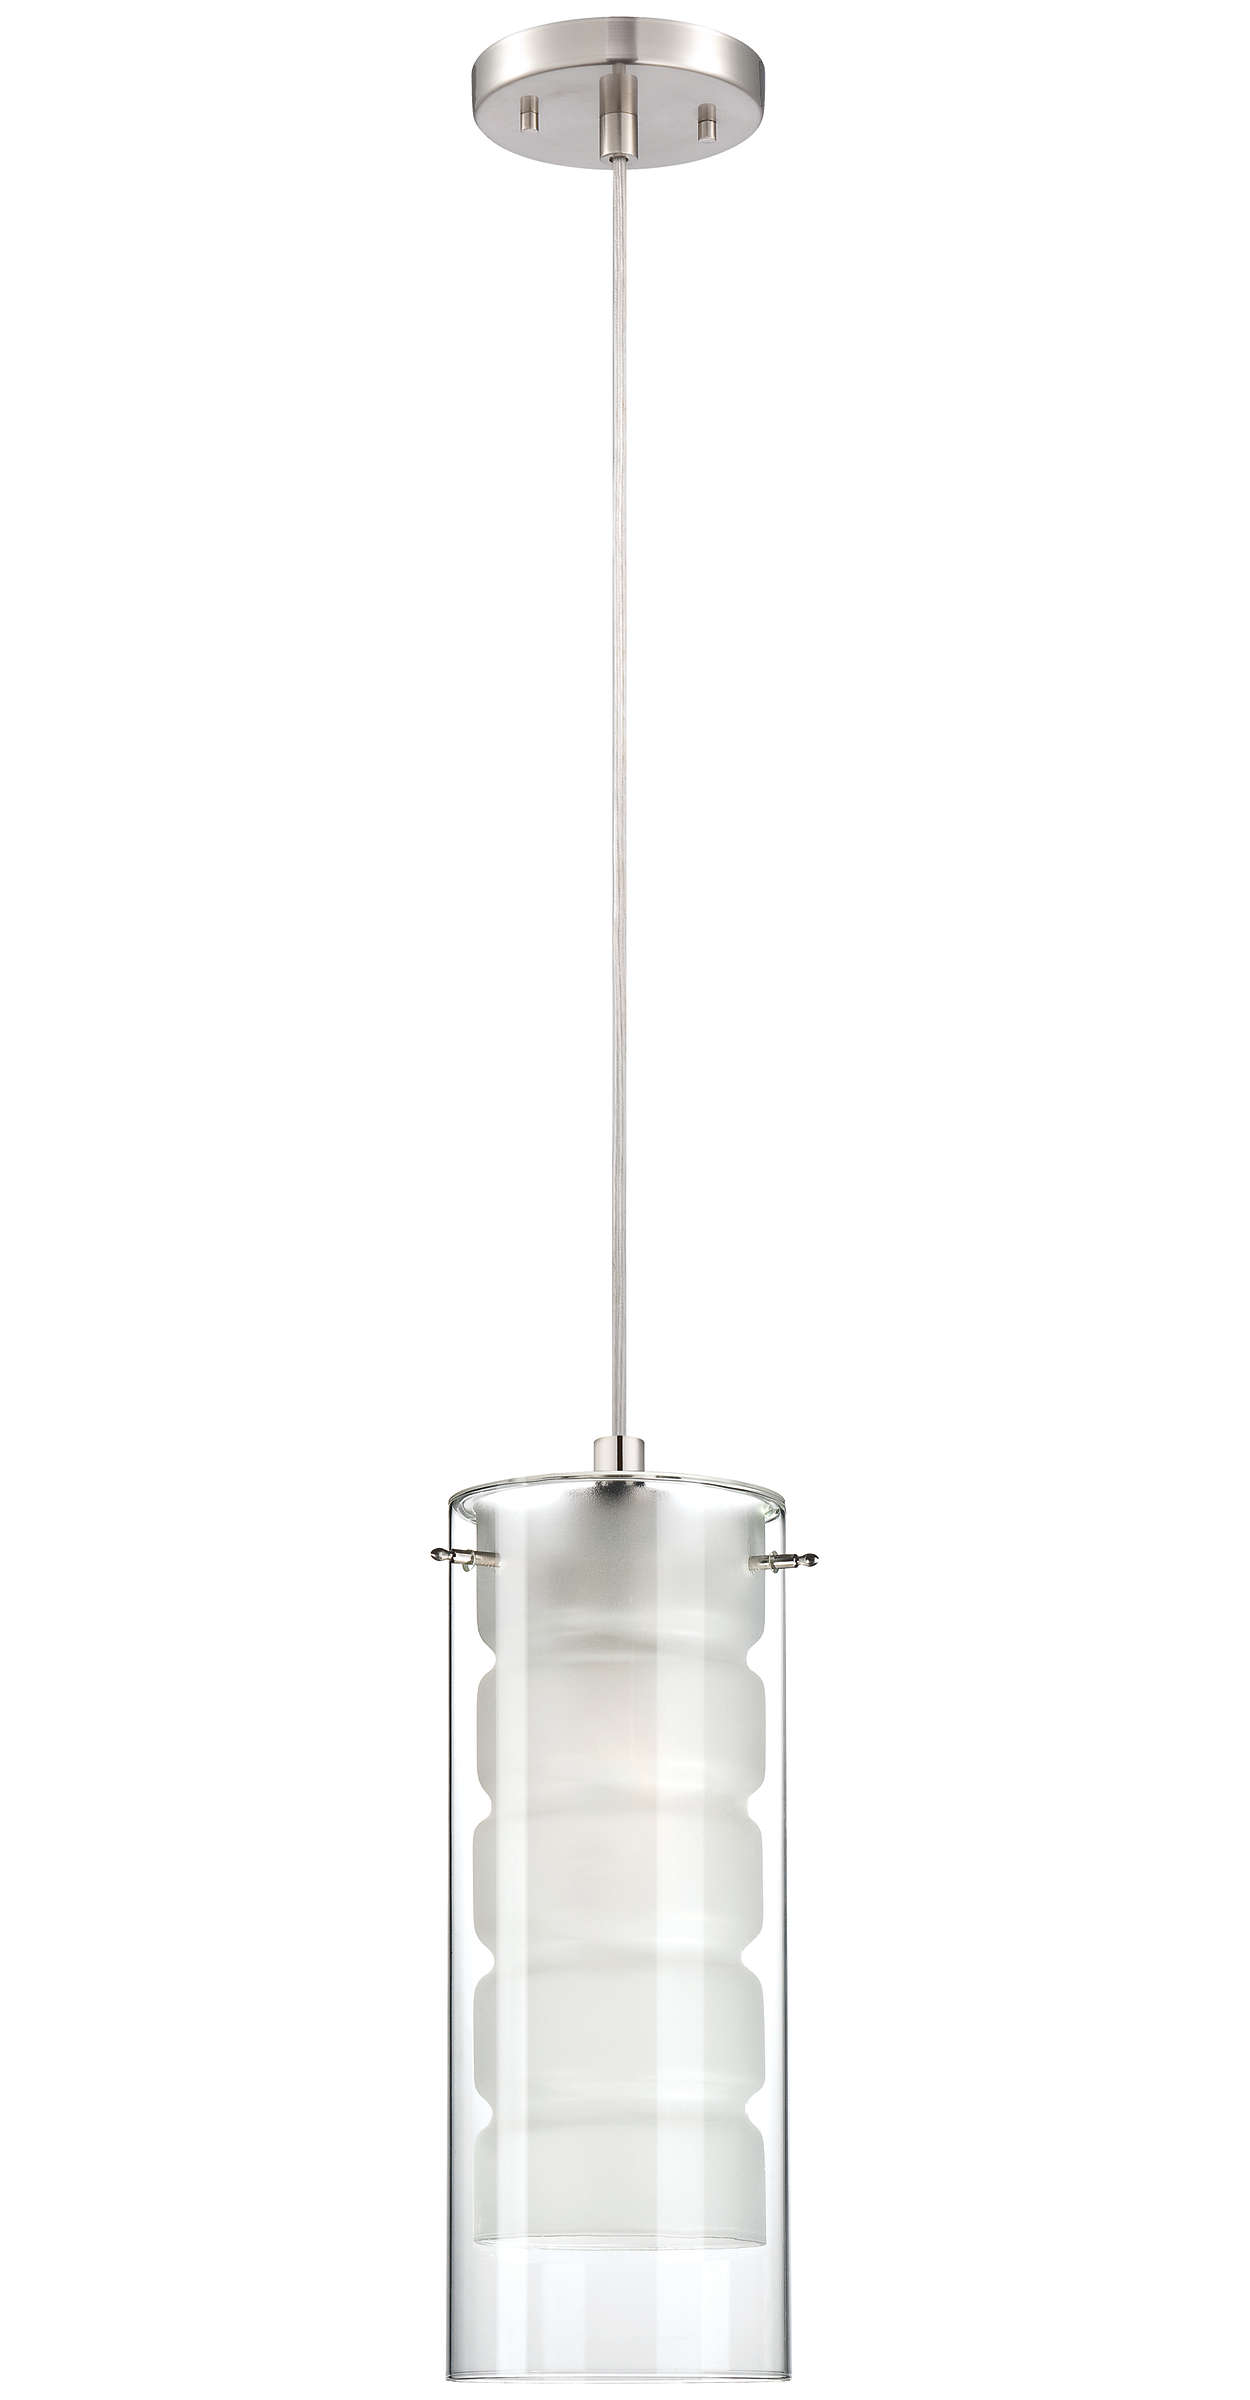 Envelop 1-light Pendant in Satin Nickel finish